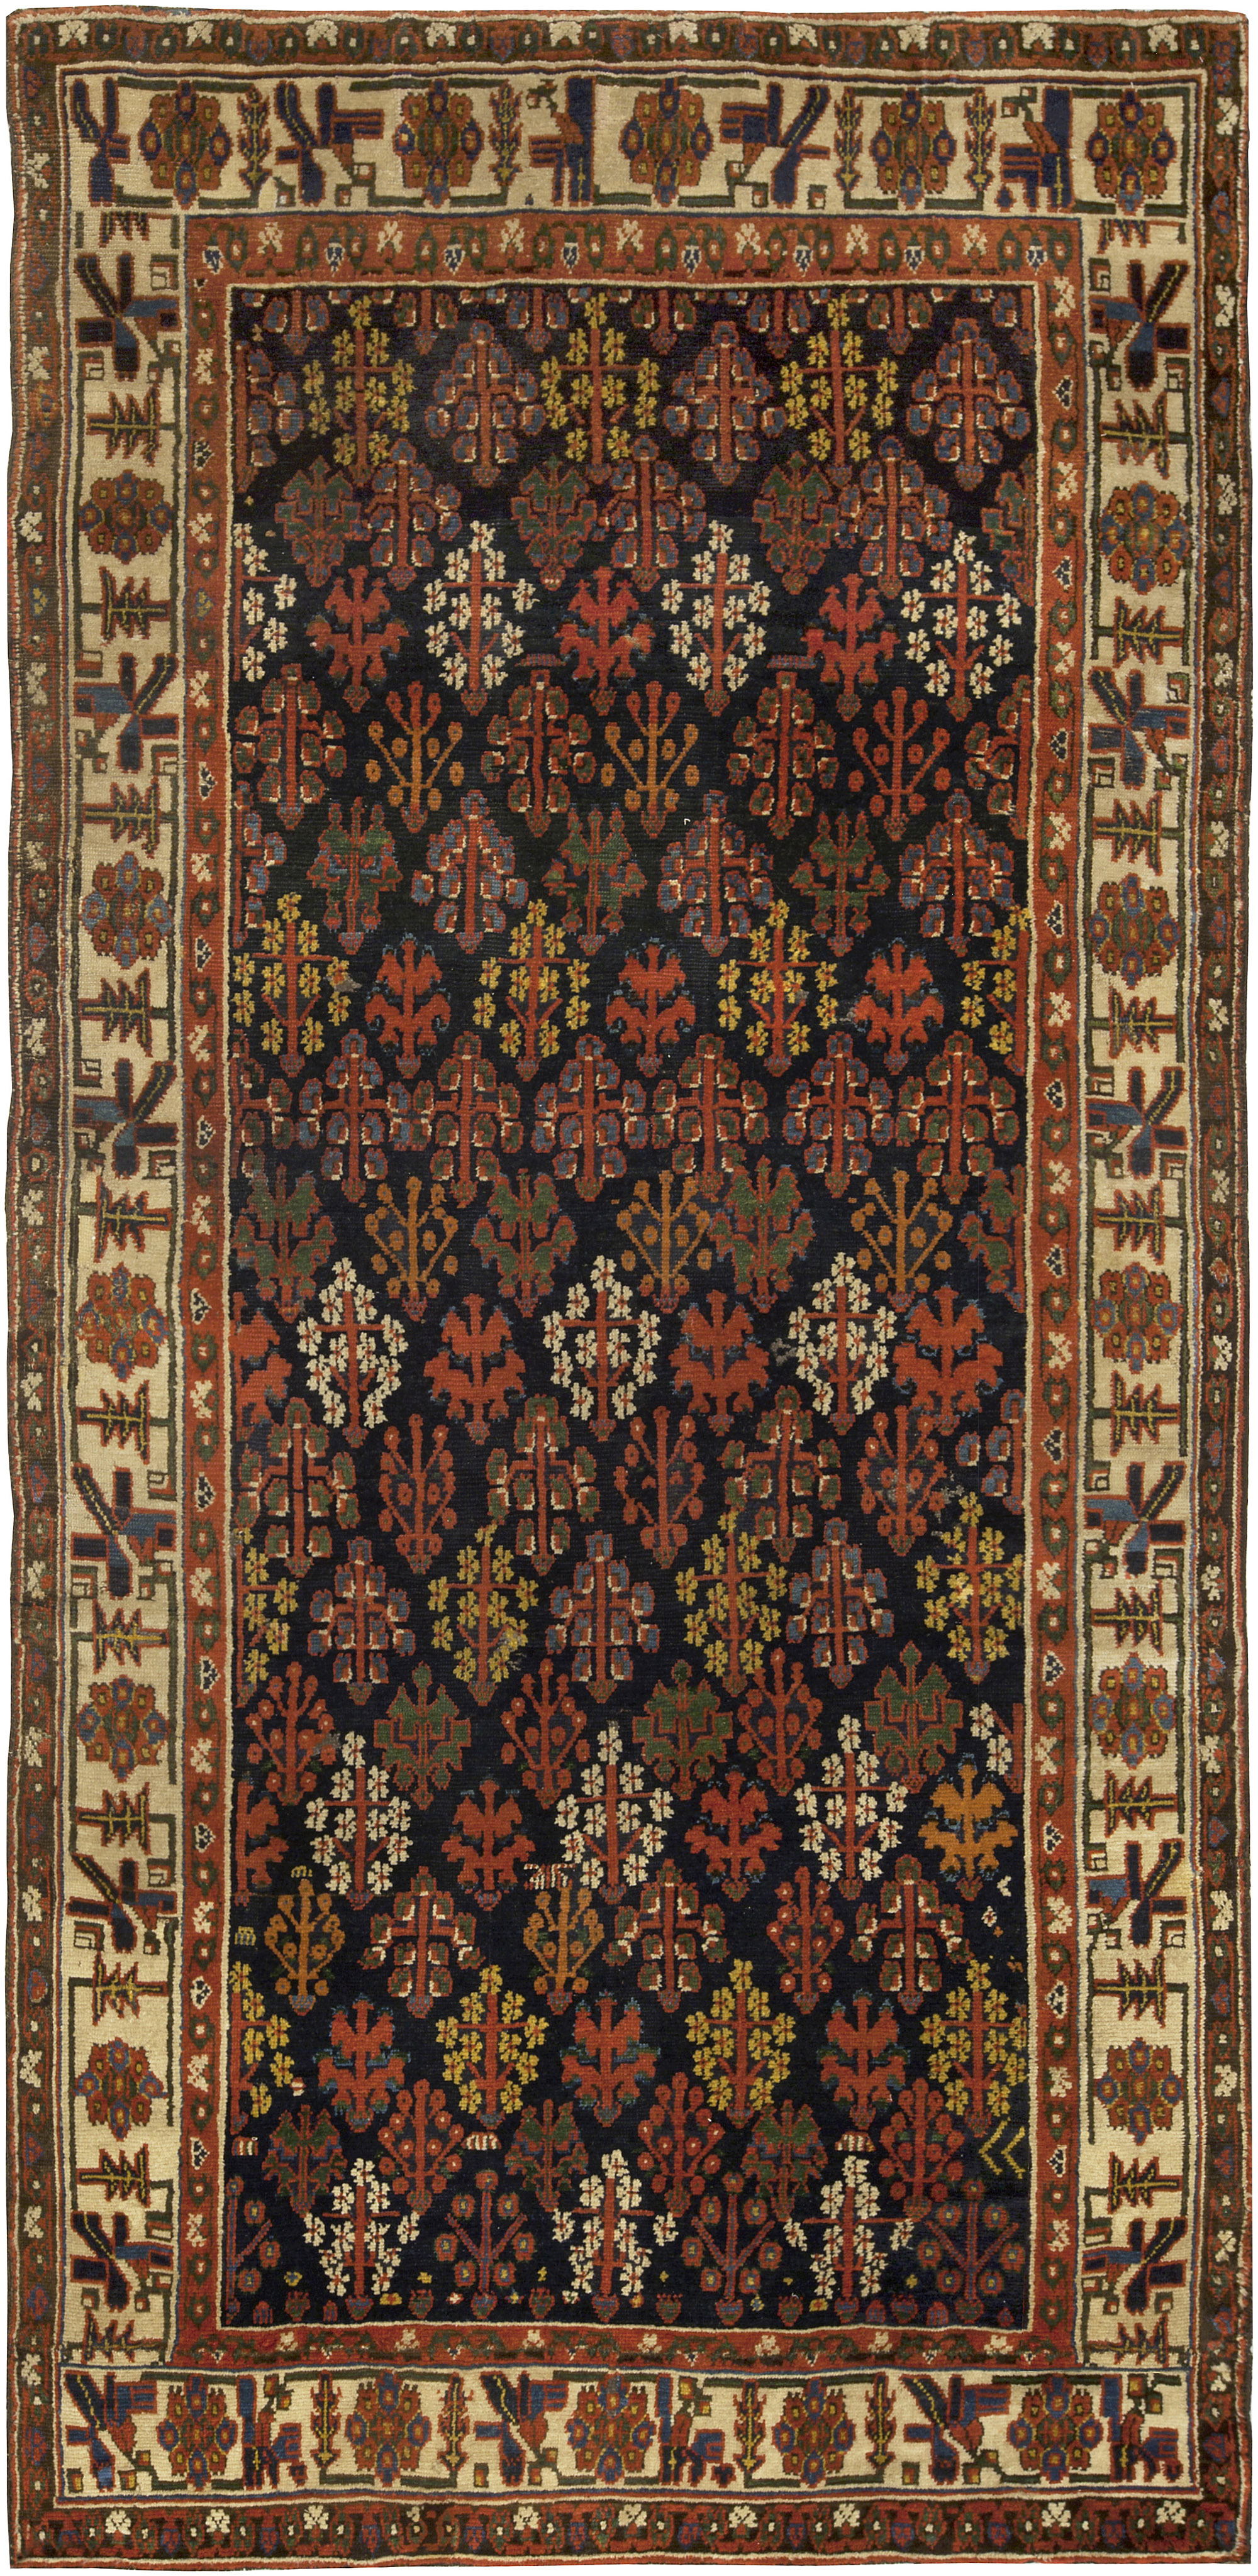 Antique North West Persian Rug Bb5087 By Doris Leslie Blau